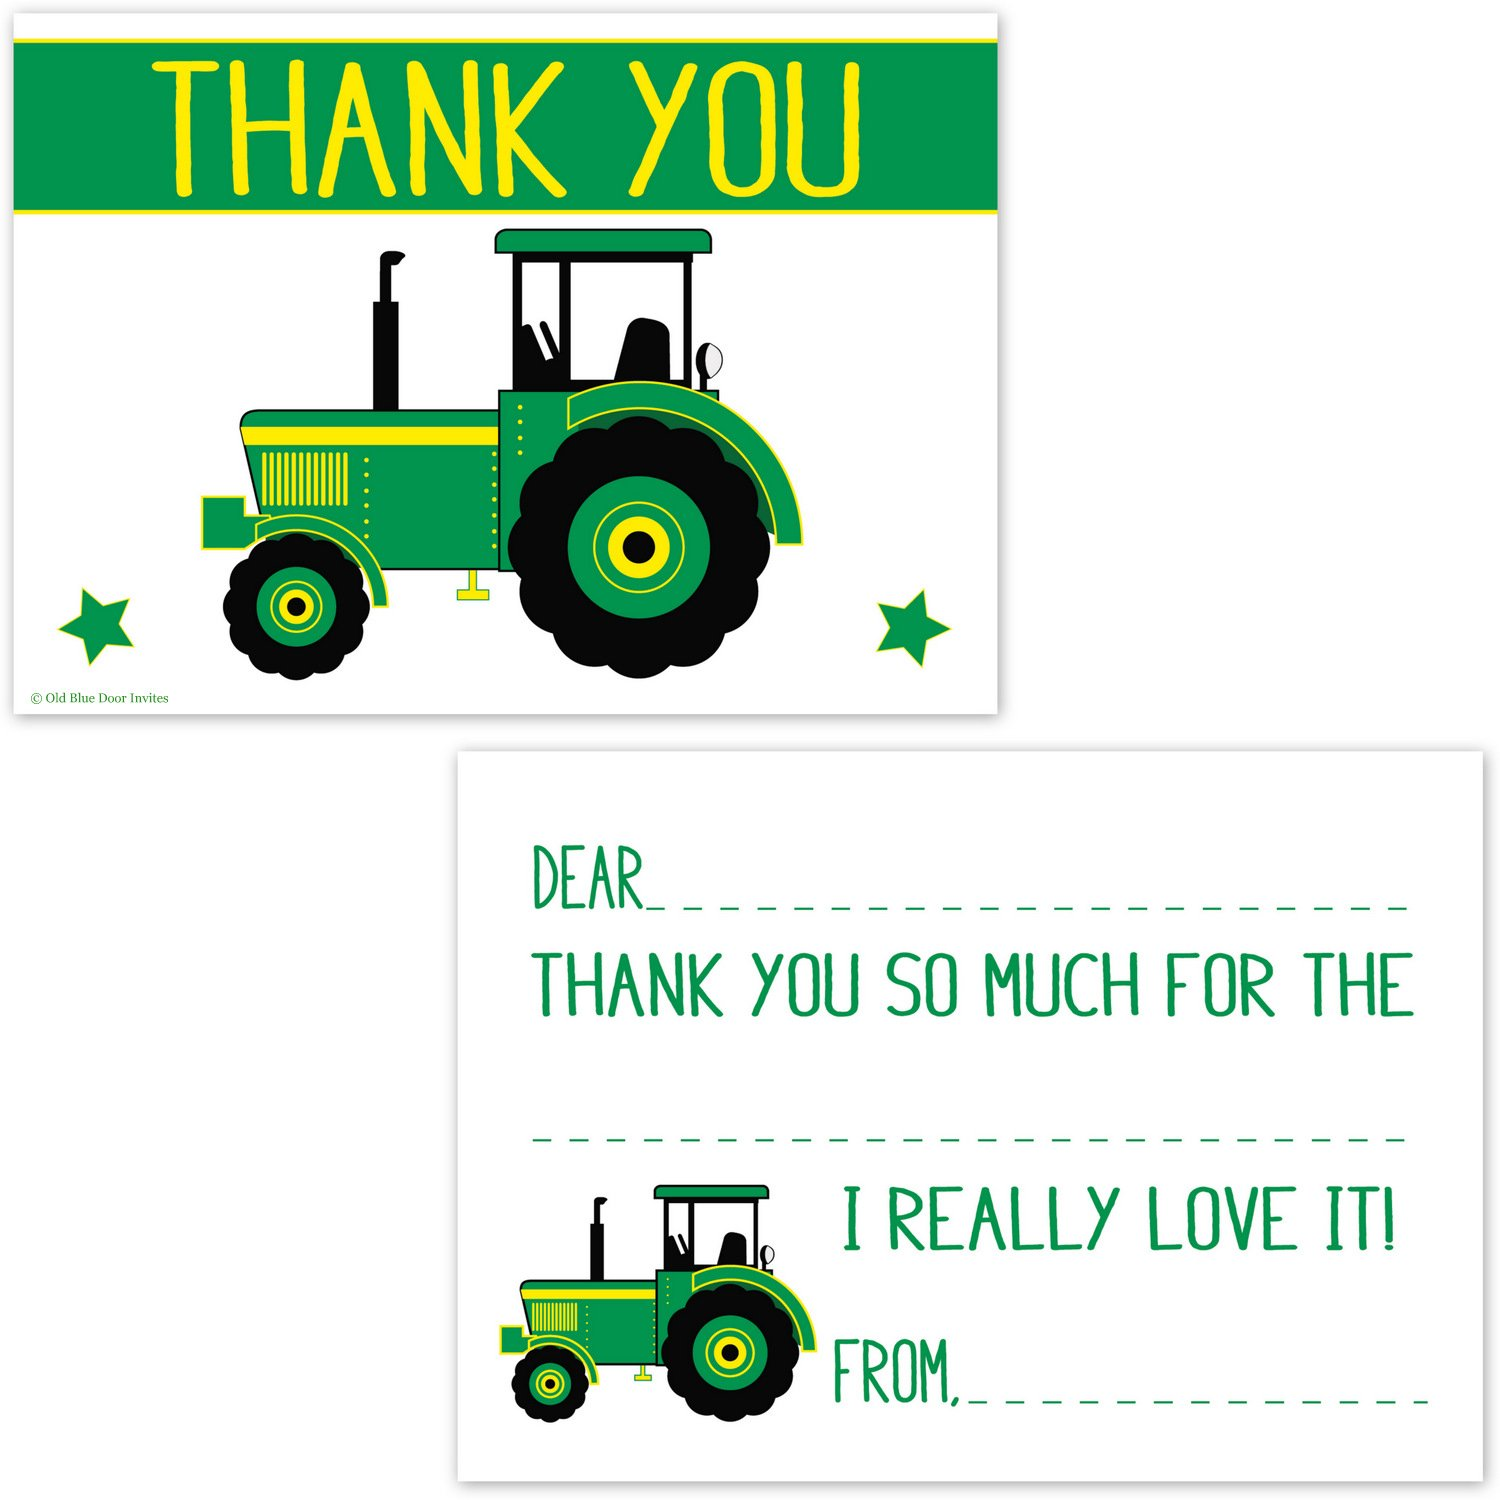 Amazon.com: Green Tractor Fill In Thank You Cards for Boys - Kids ...